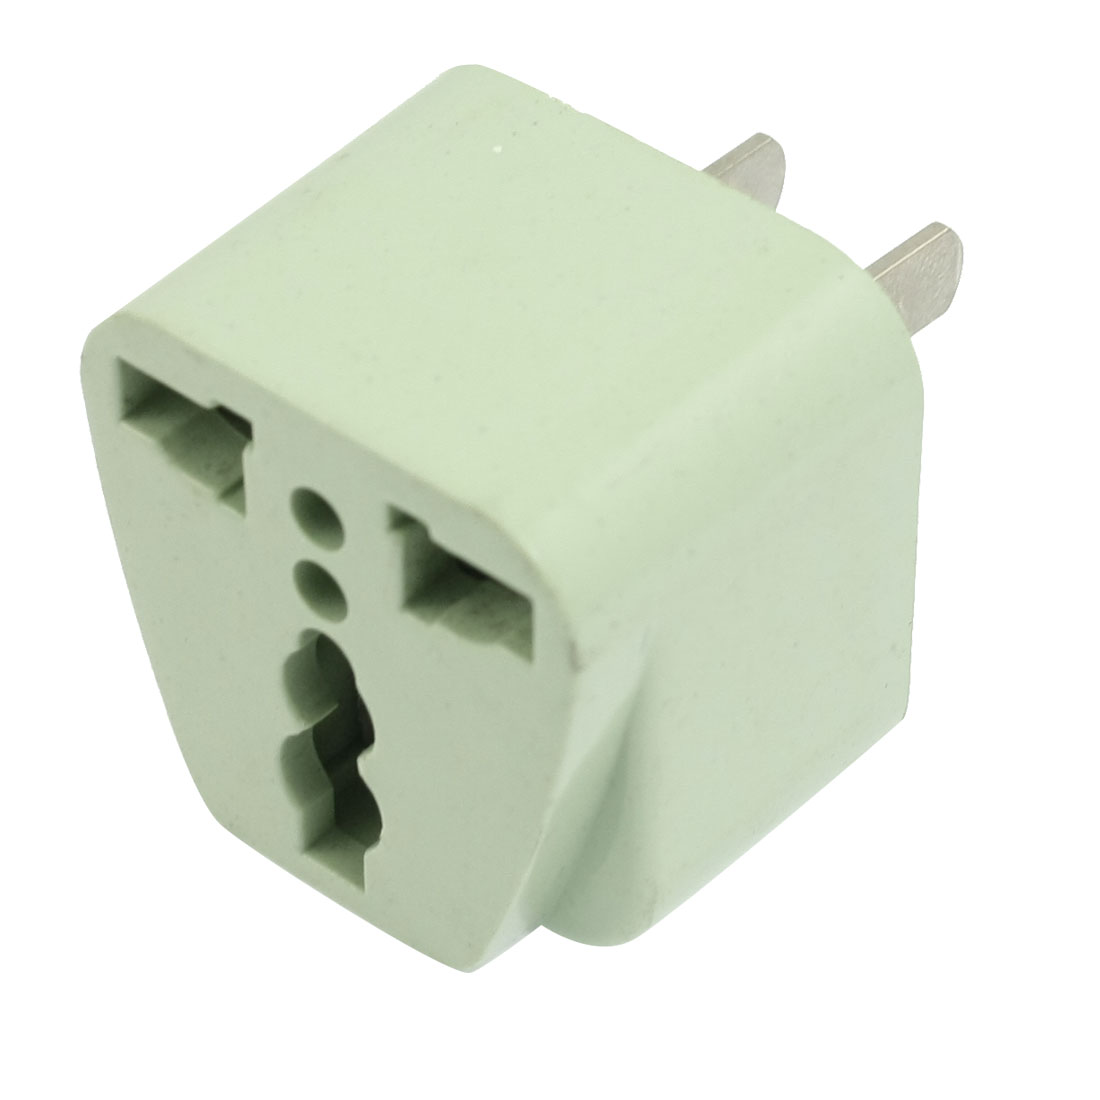 Universal UK AU EU to US AC Power Plug Outlet Adapter Converter